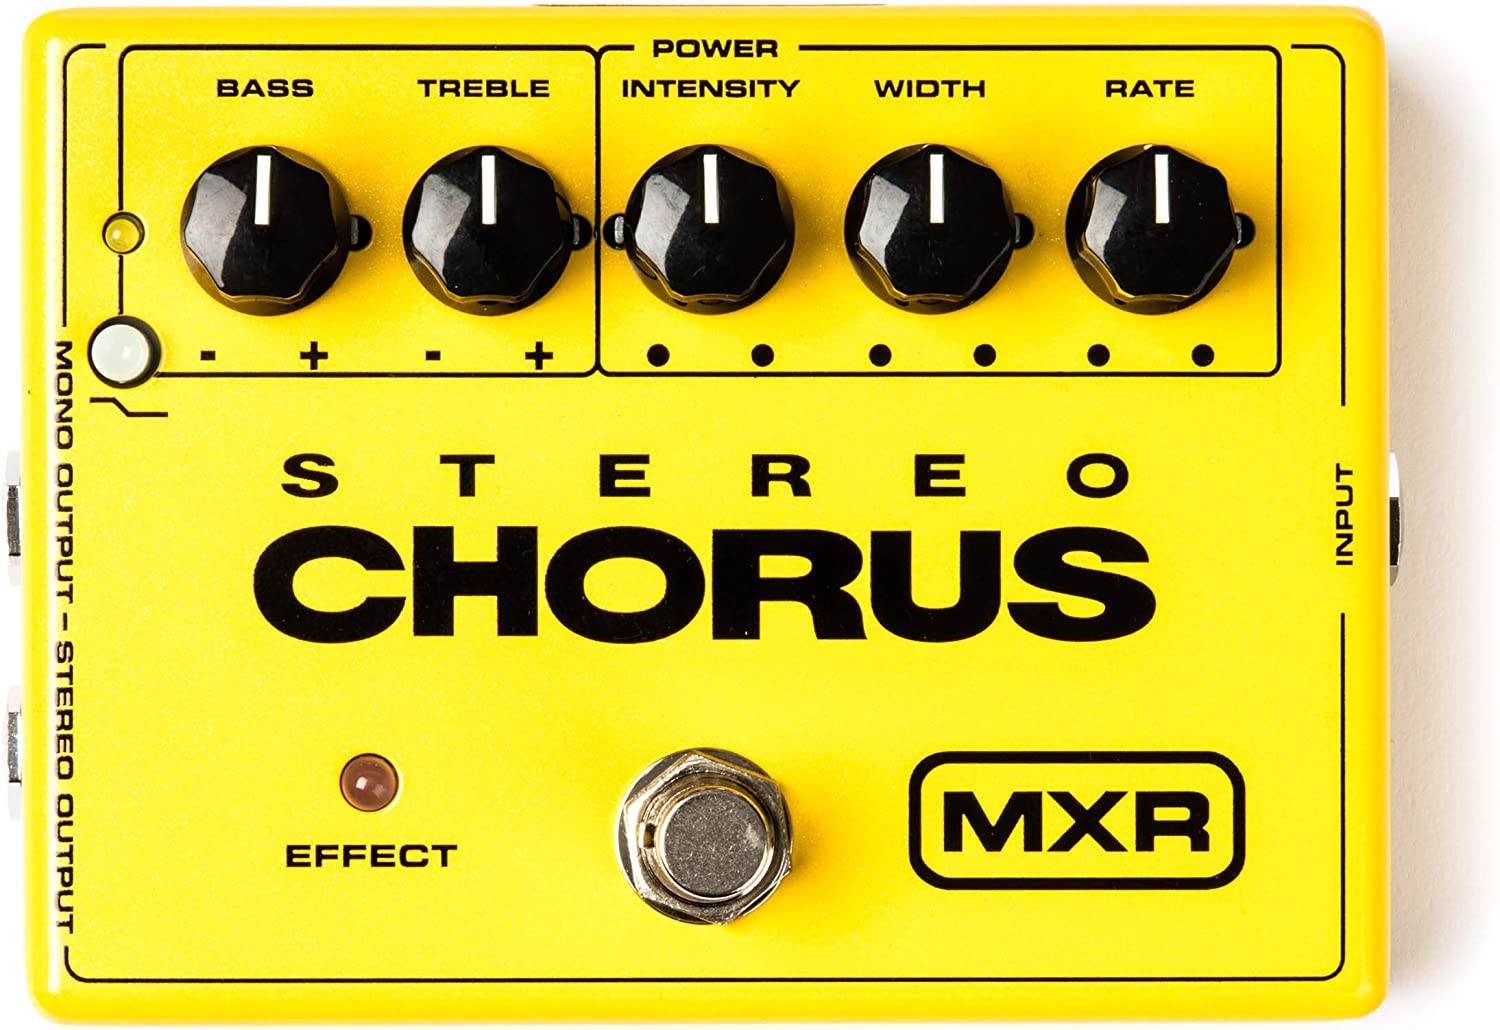 Outlet sale feature Limited price MXR M134 Chorus Stereo